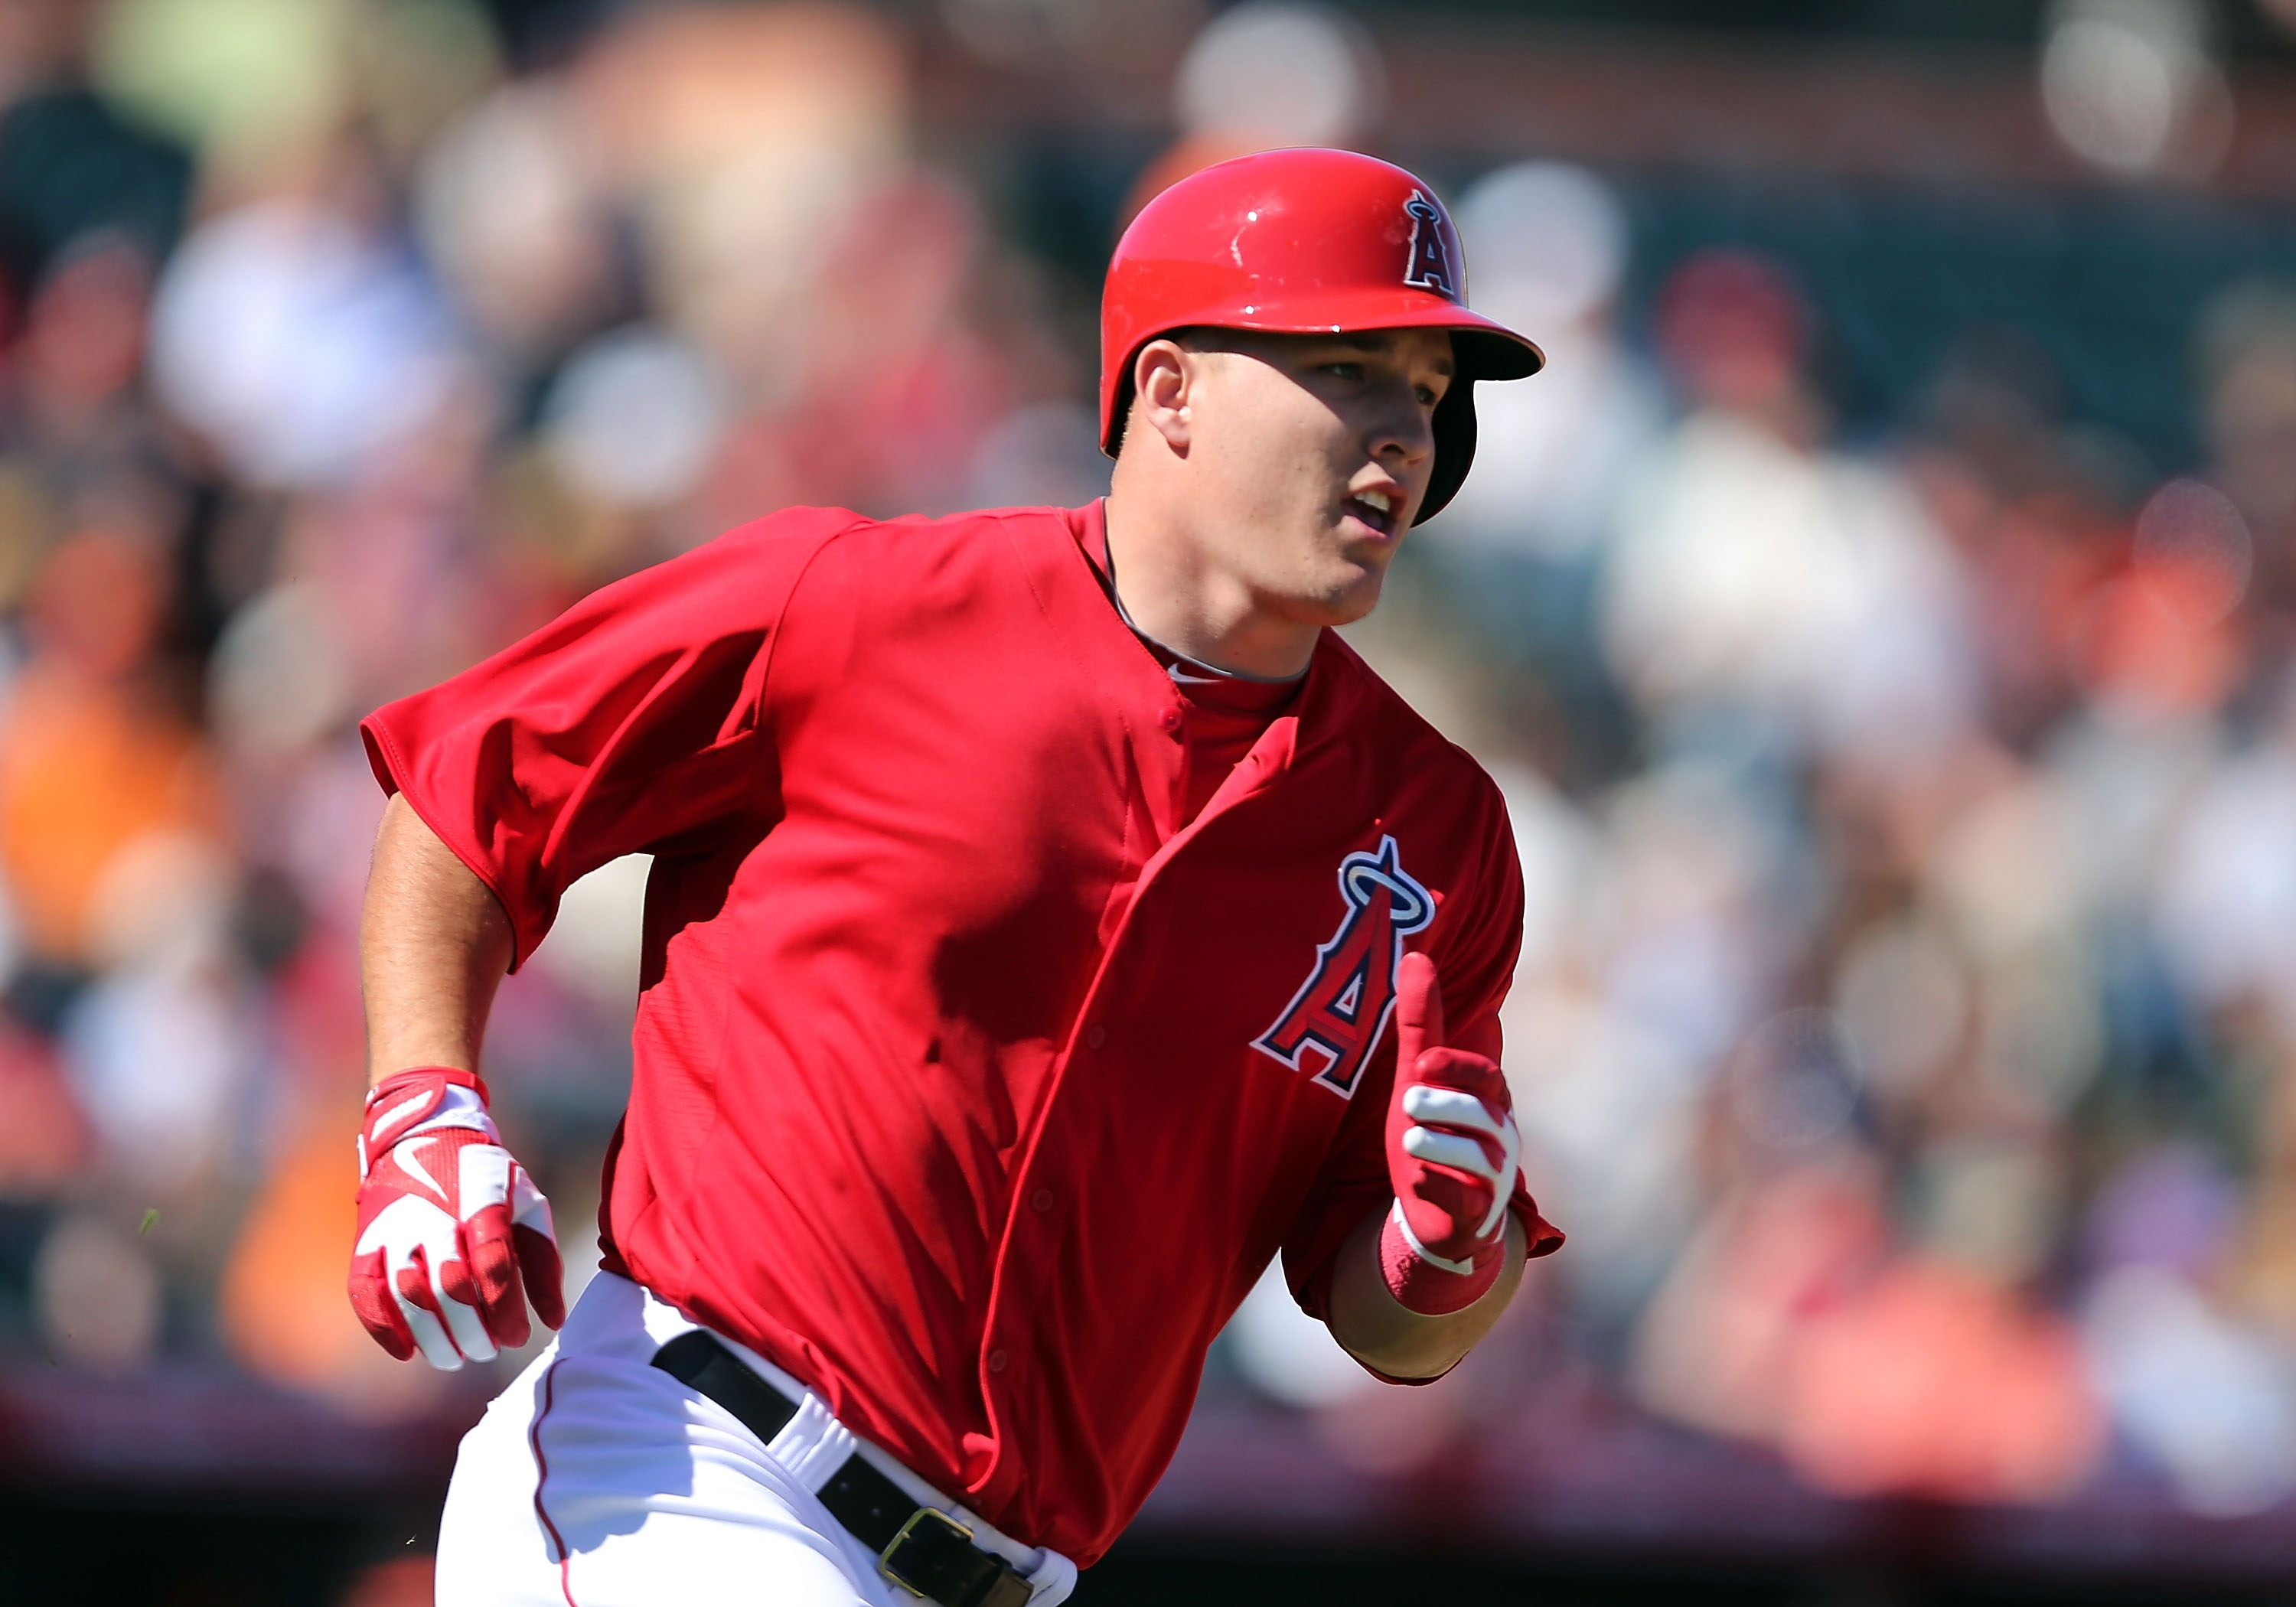 Mike Trout hit .326 last season with 30 home runs and 49 stolen bases. (Getty Images)